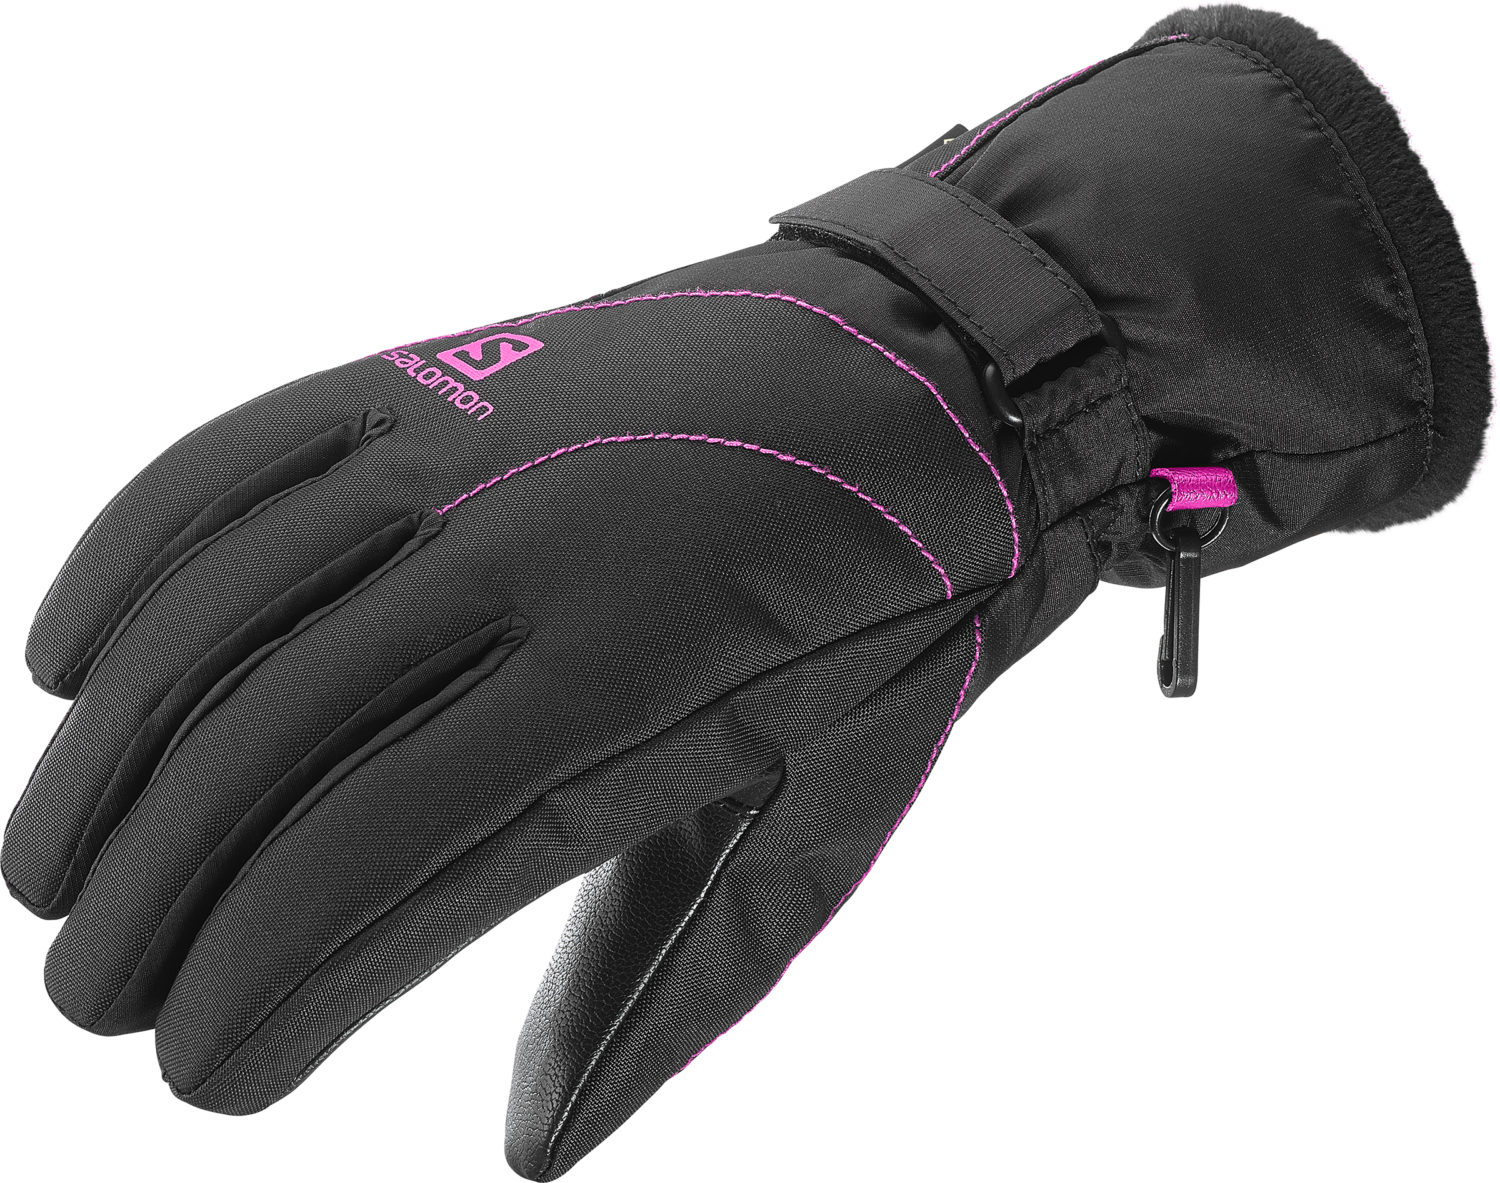 2017-18 Salomon Force GTX Womens Ski Glove Black rose